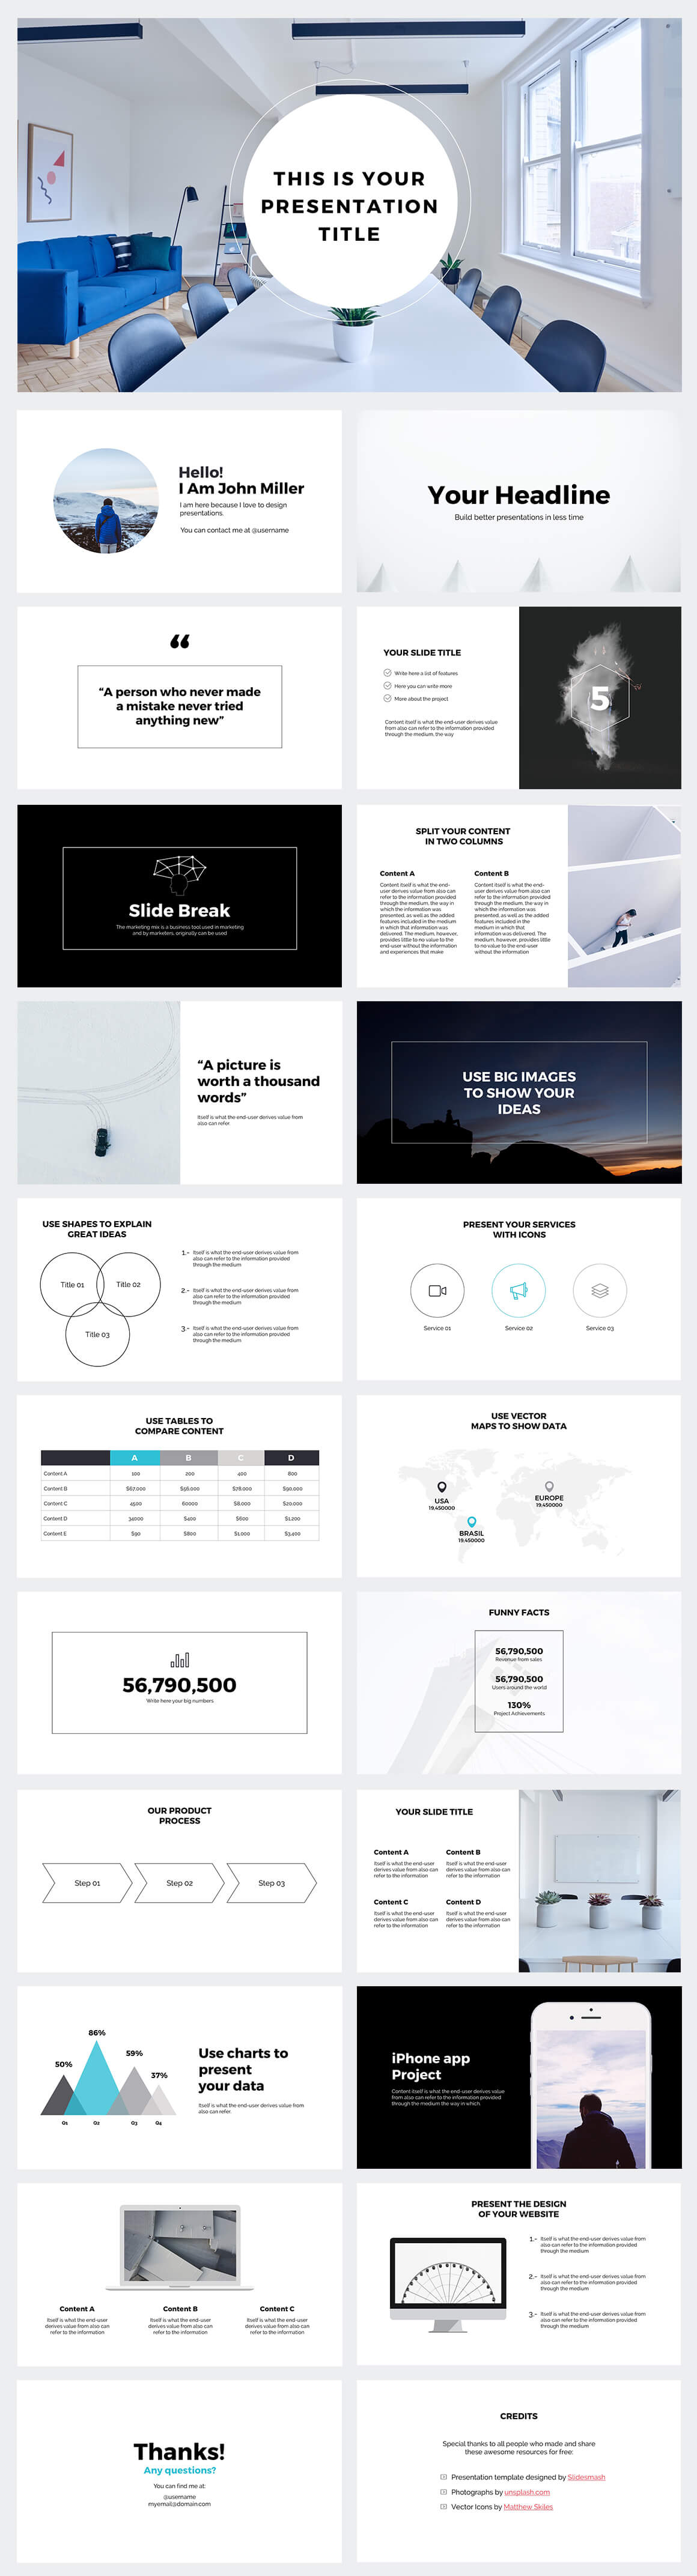 22 free business strategy powerpoint slides templates business strategy powerpoint template large preview toneelgroepblik